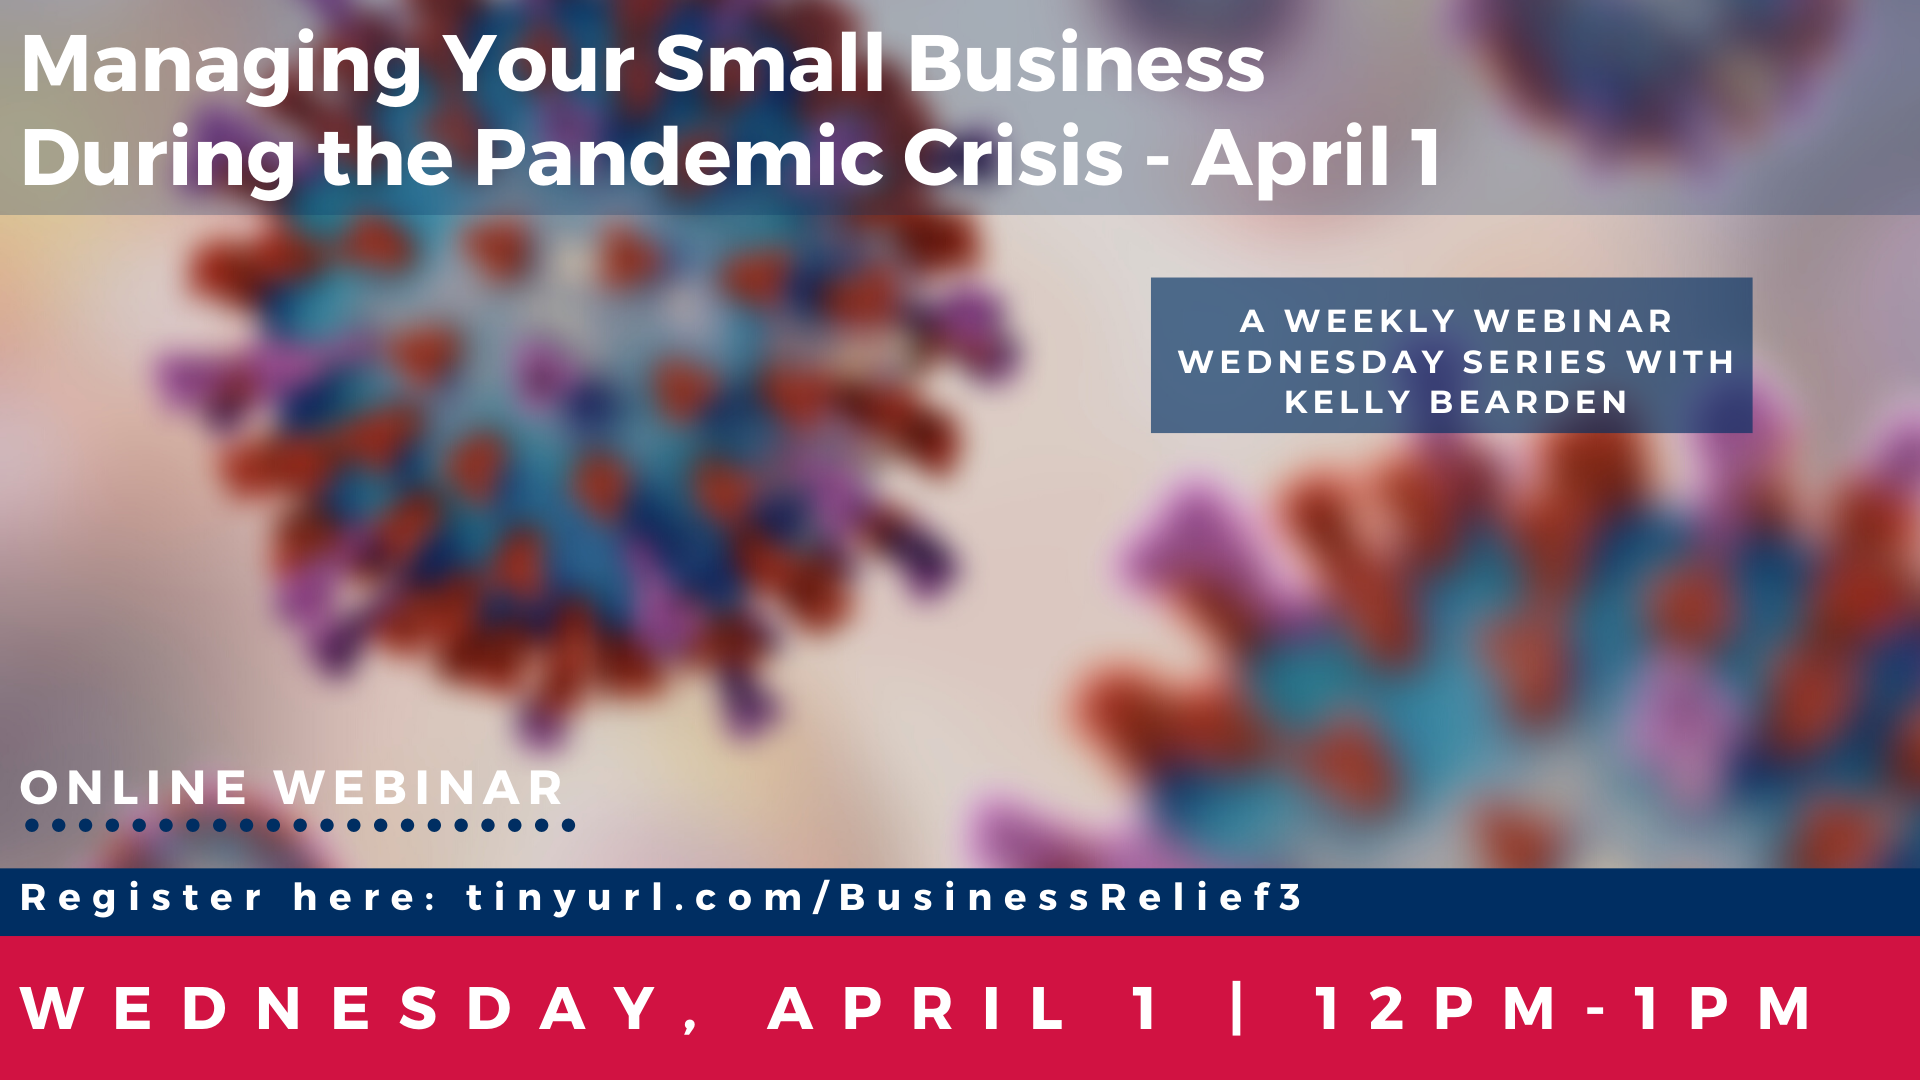 Managing Your Small Business during the Pandemic Crisis - April 1